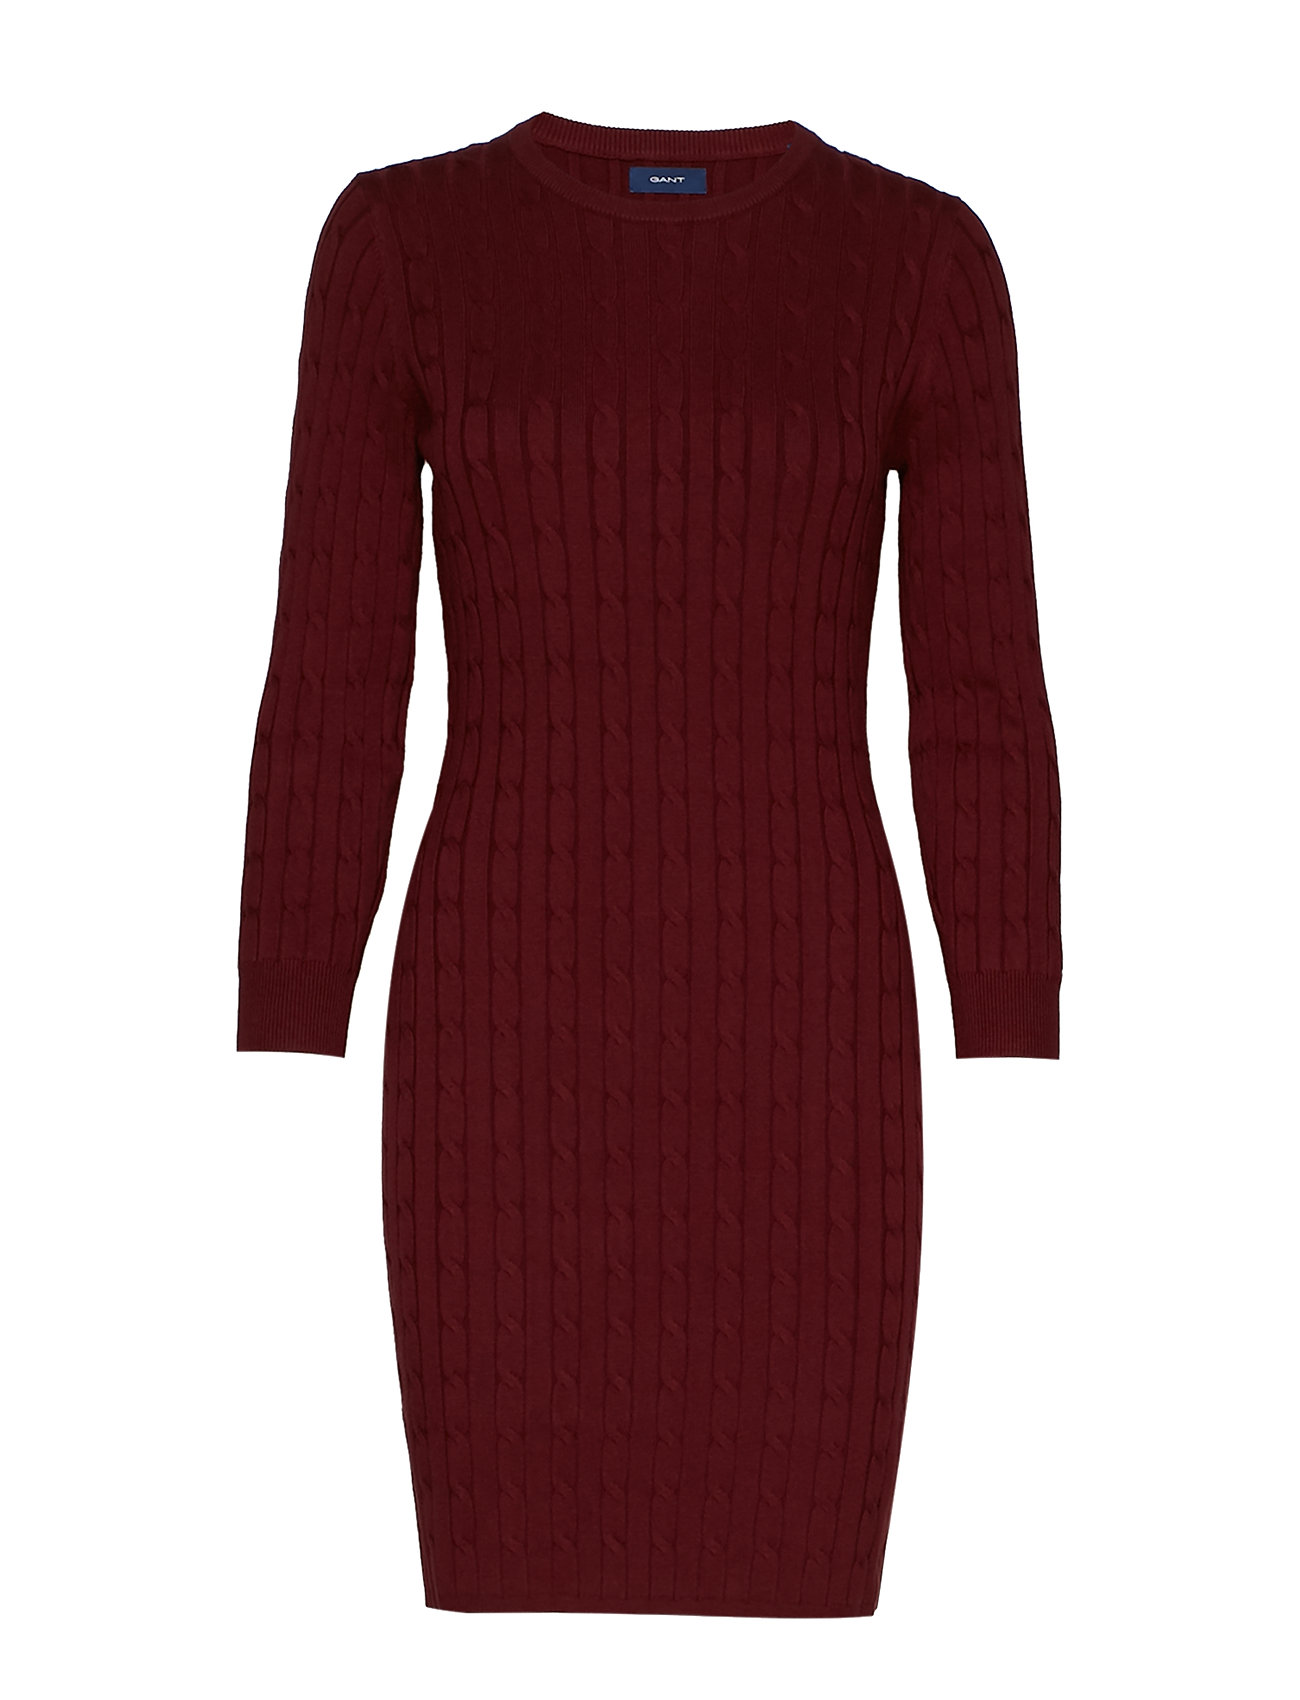 GANT STRETCH COTTON CABLE DRESS - PORT RED